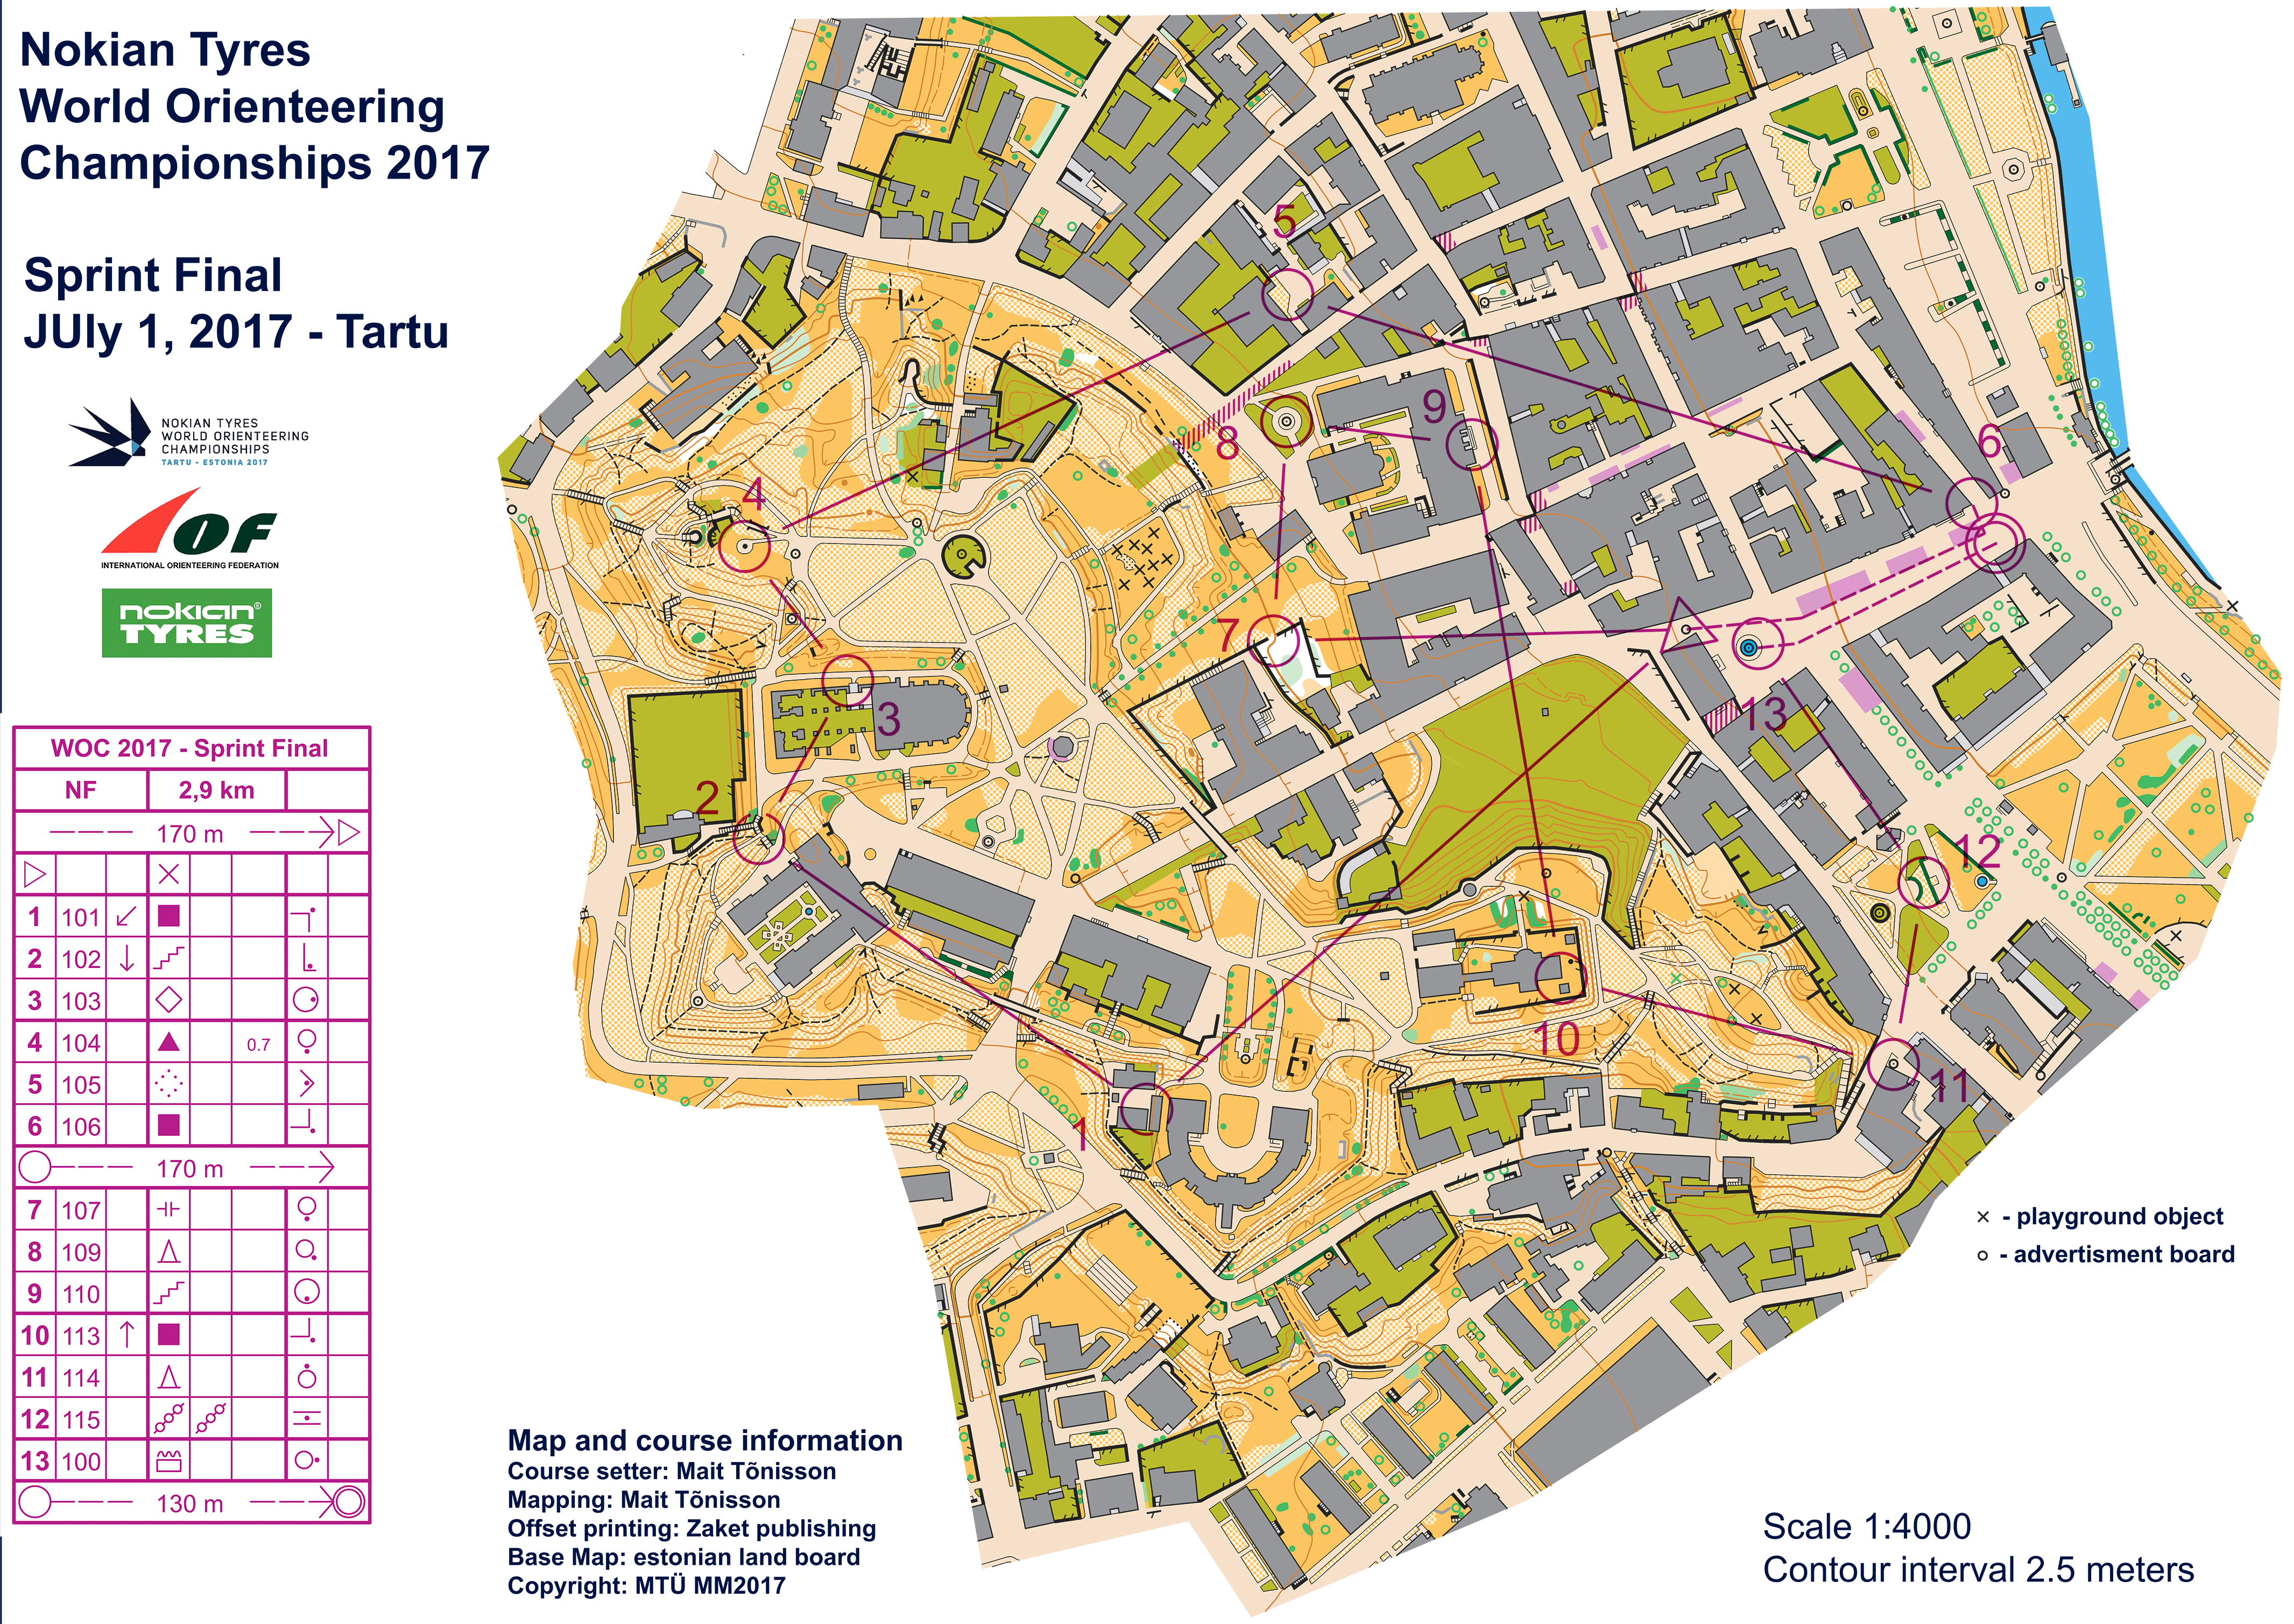 Woc 2017 sprint maps and results world of o news see map in omapsofo biocorpaavc